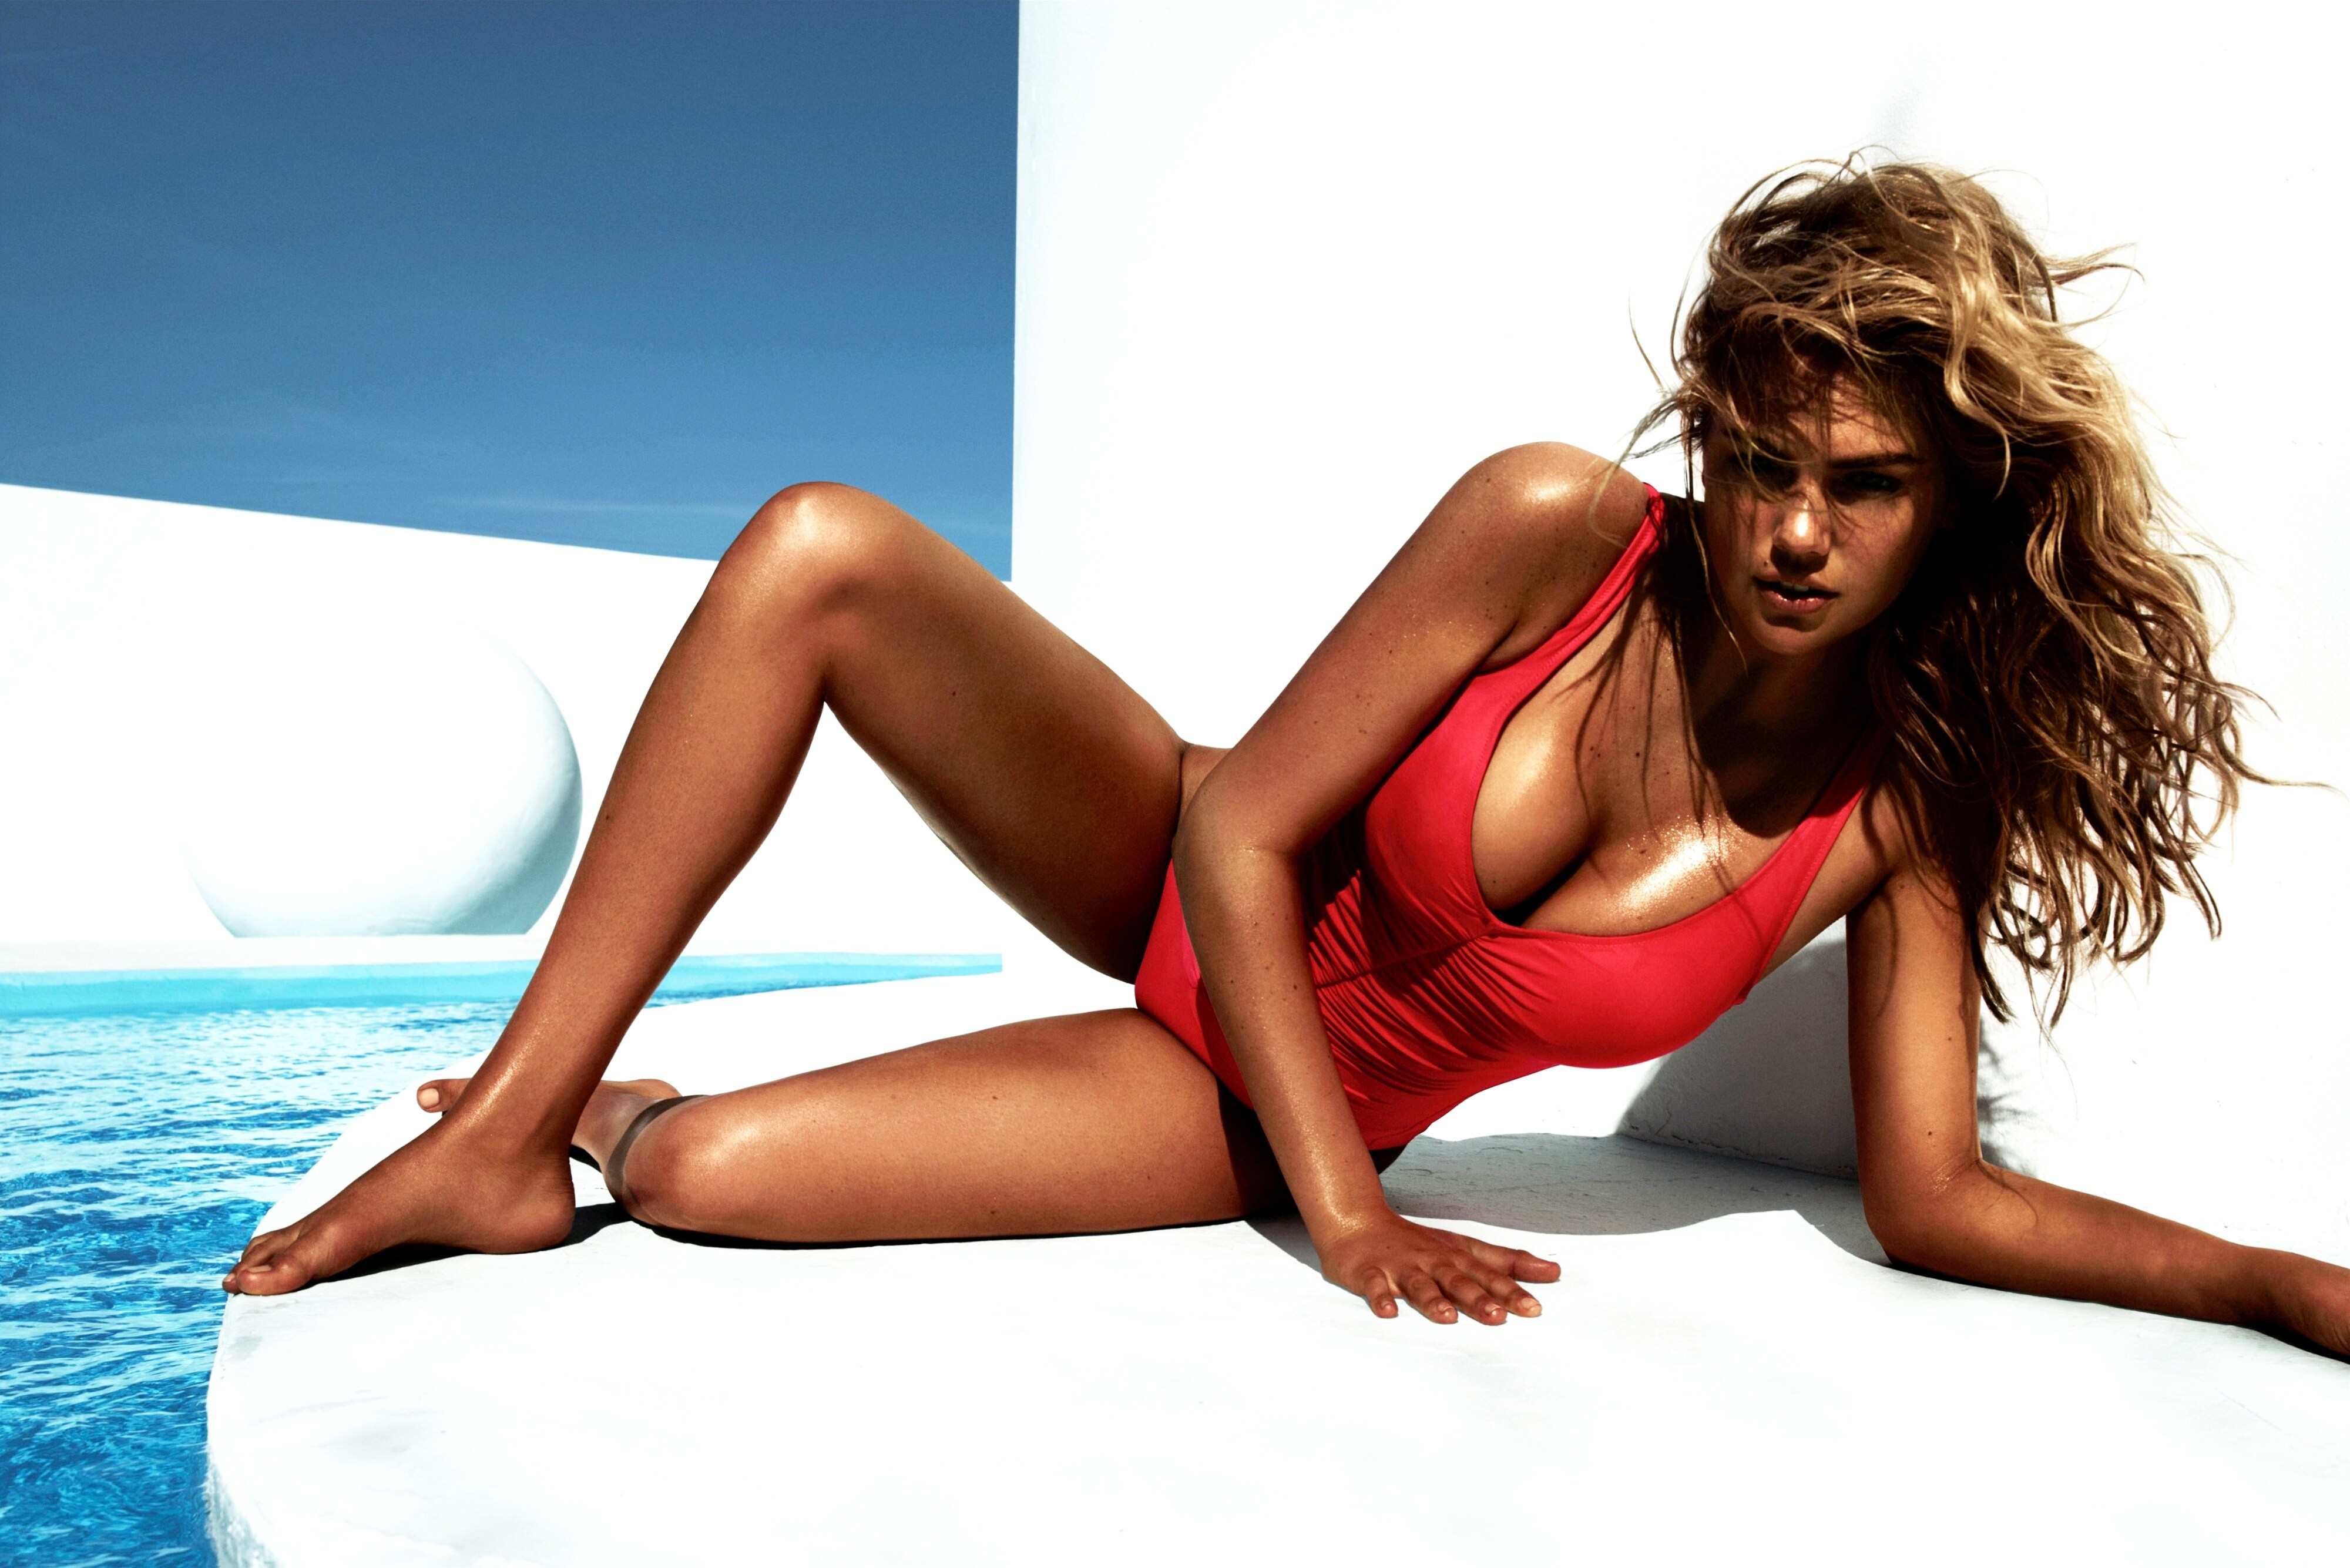 Kate upton 4k ultra hd wallpaper and background image 4000x2669 celebrity kate upton actress american blonde swimsuit wallpaper voltagebd Choice Image